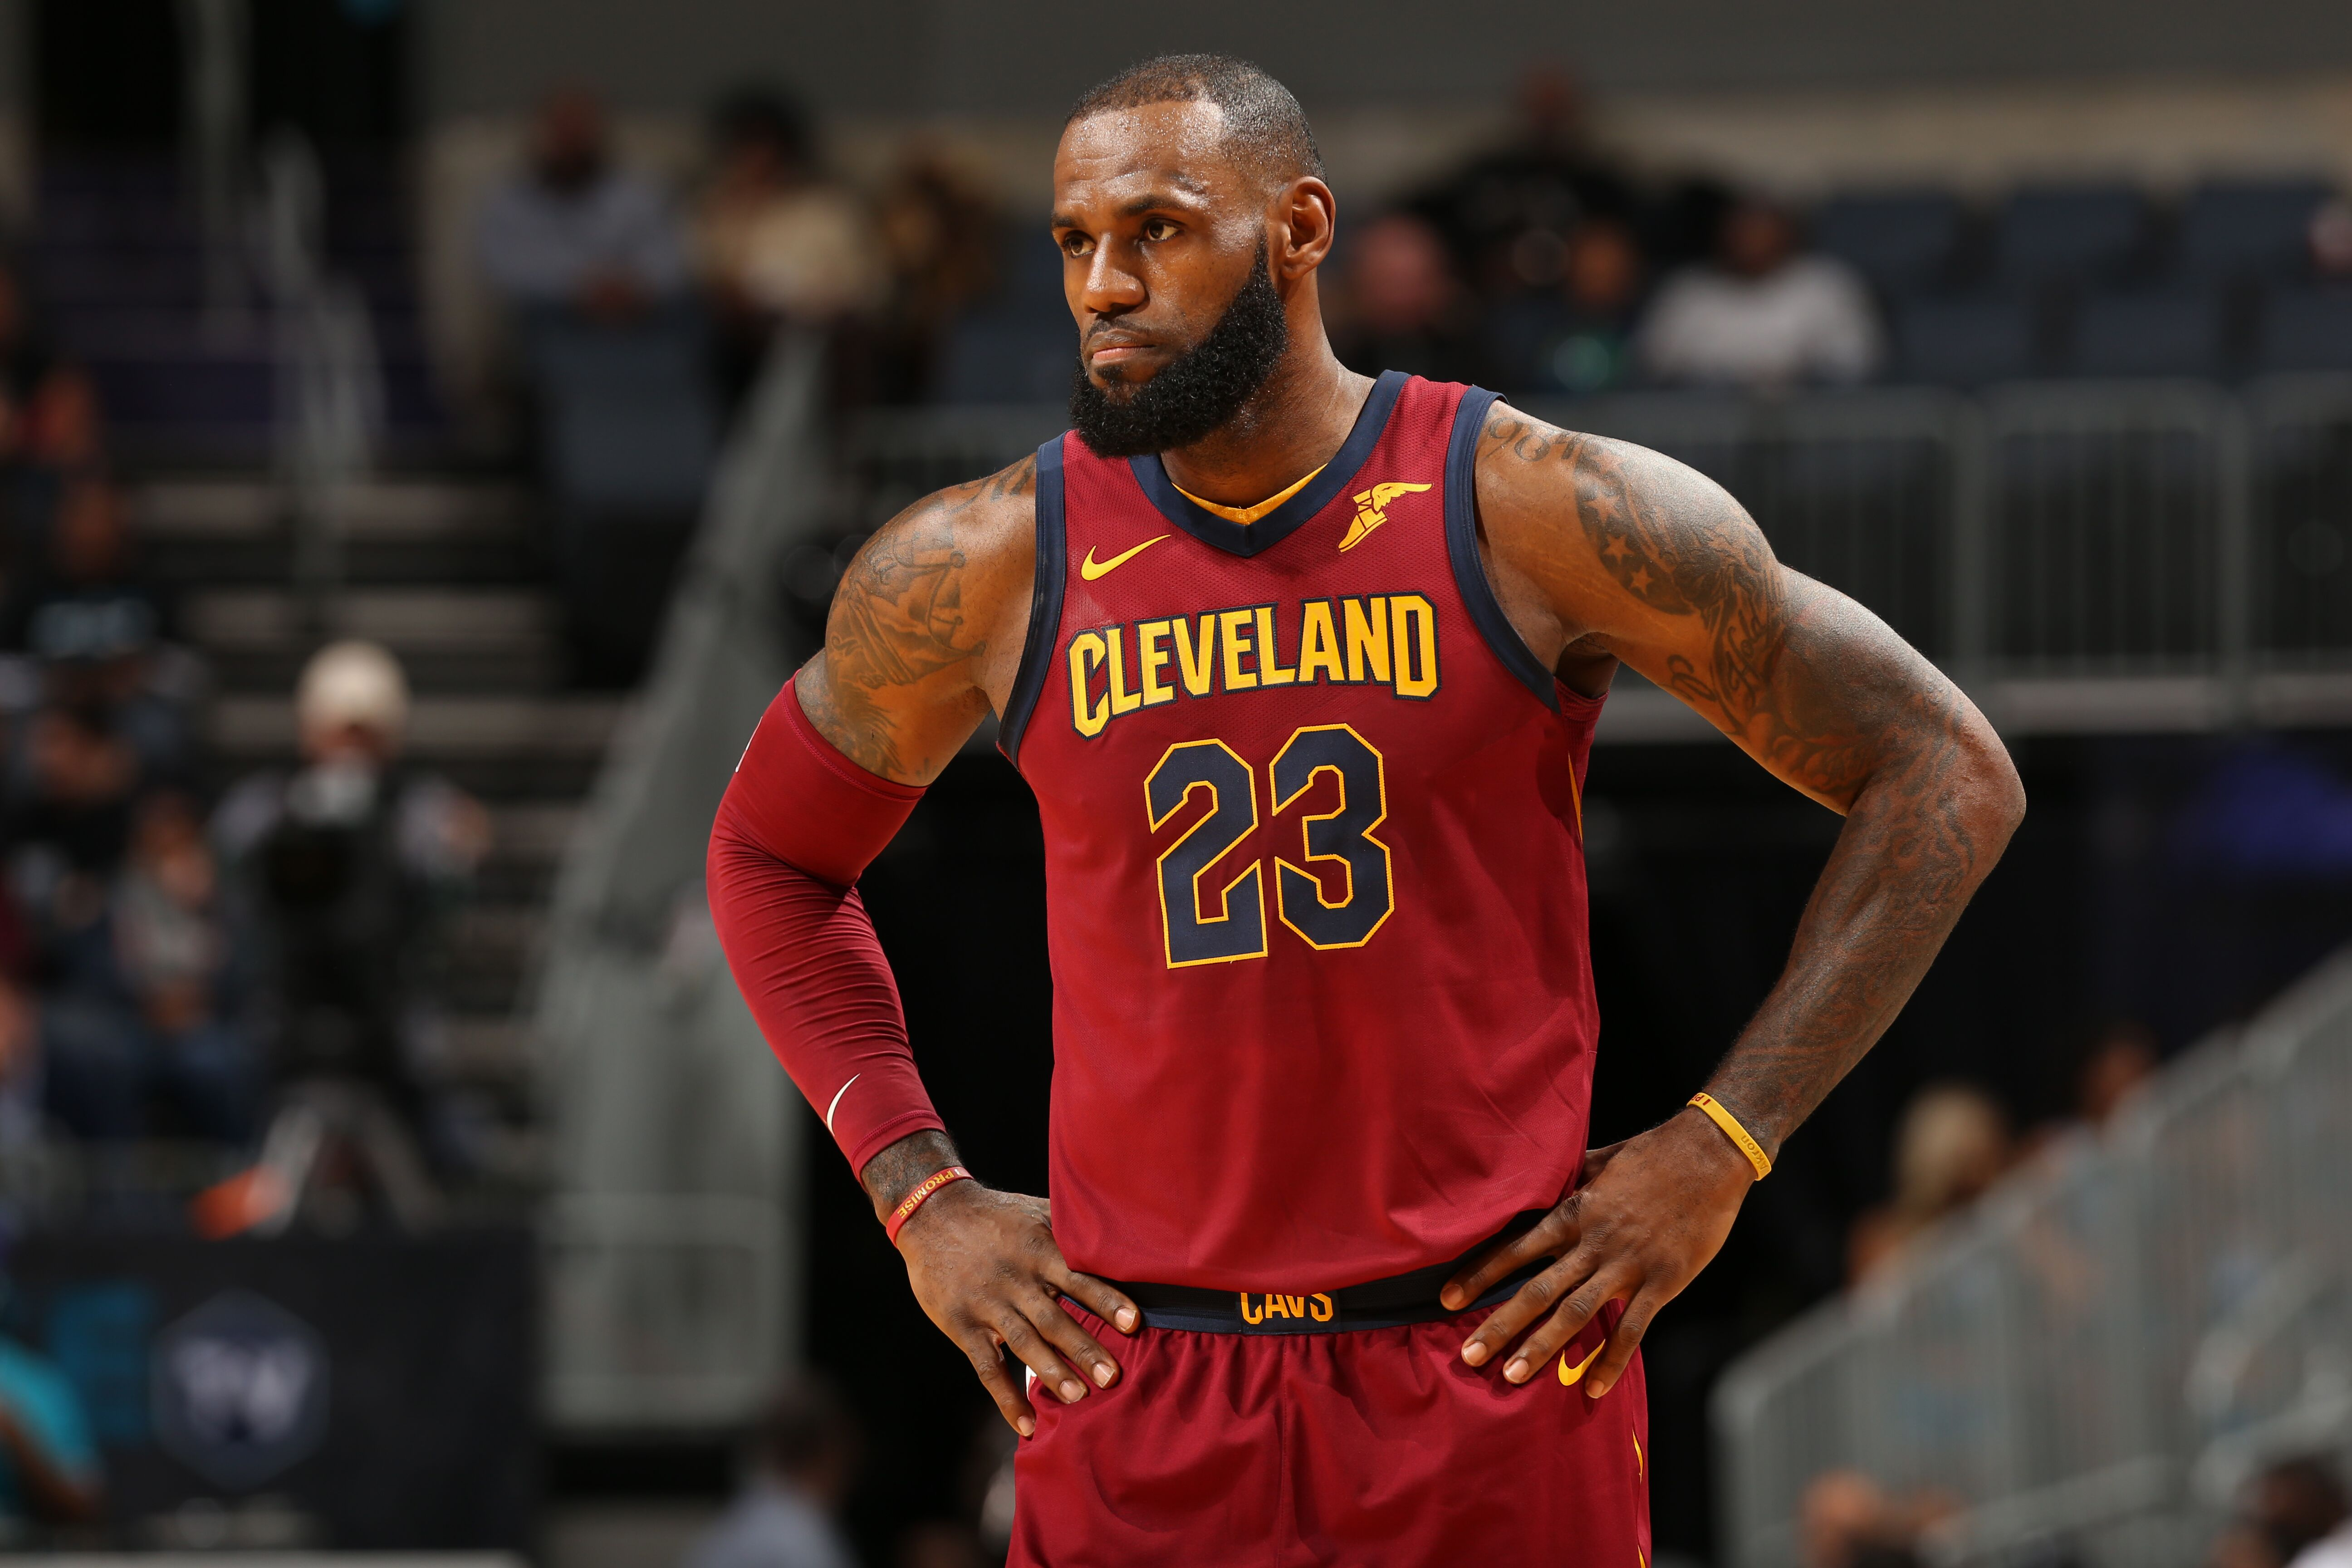 Cleveland Cavaliers Charlotte Hornets Clippers Live Stream  Watch Online